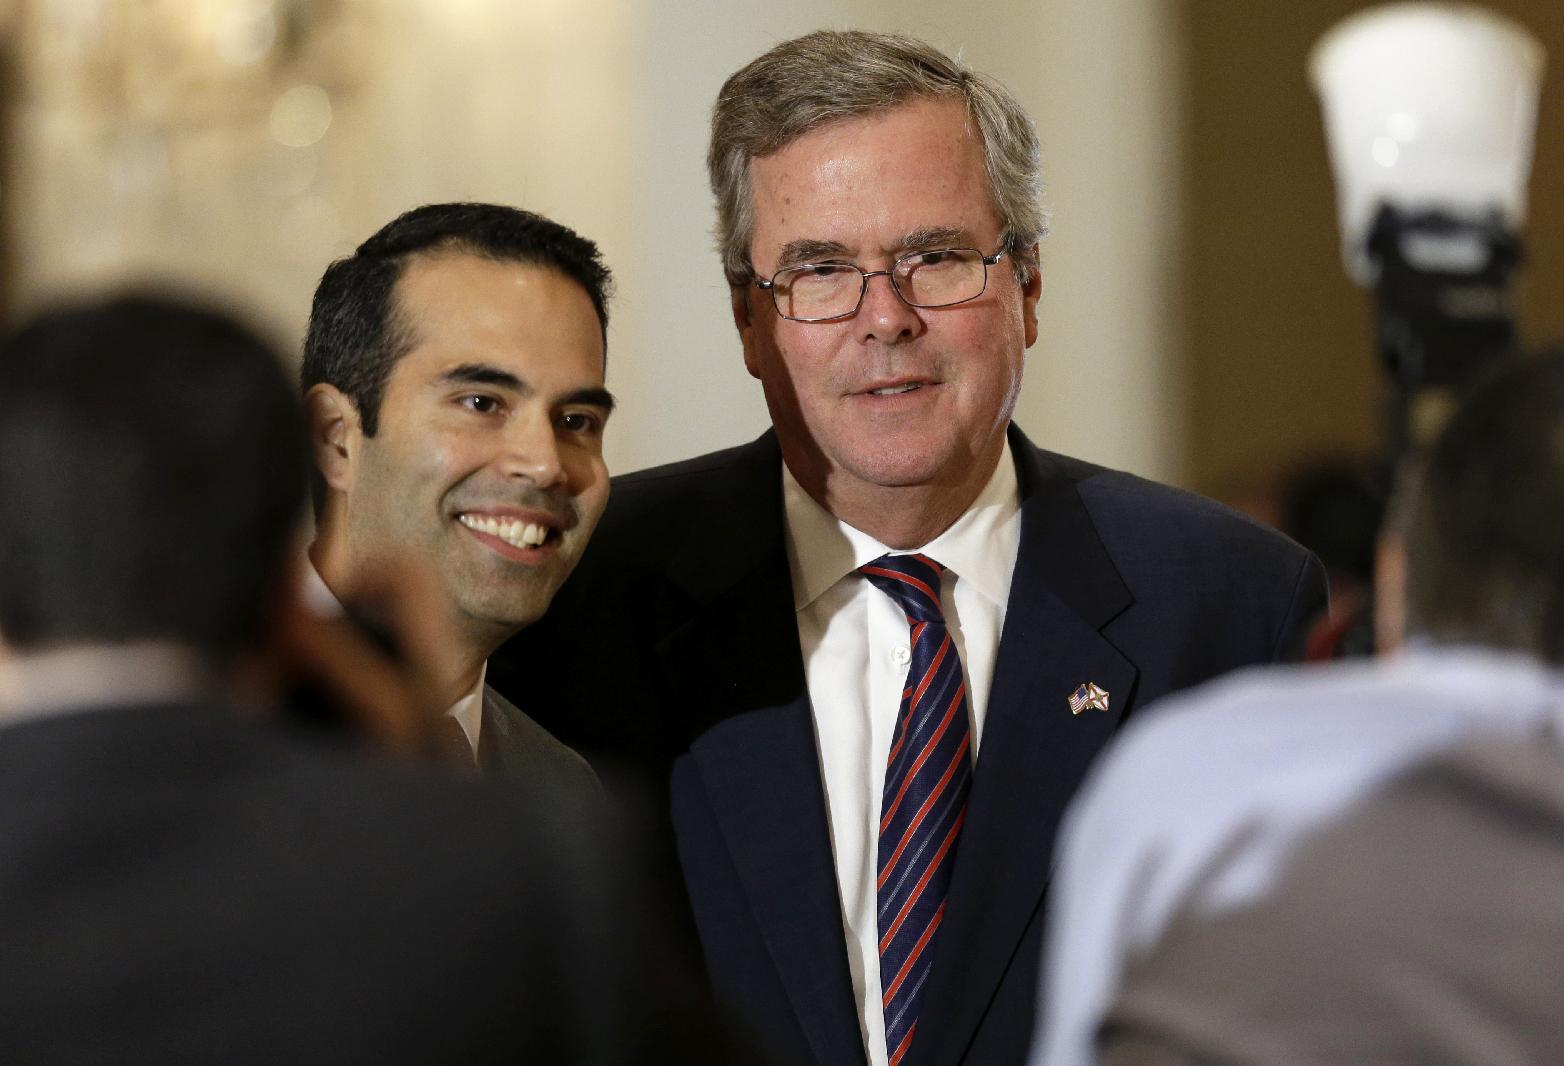 George P. Bush, left, poses for photos with his dad, former governor Jeb Bush, right, before a Dallas Council of World Affairs luncheon where Jeb was the featured speaker Wednesday, April 24, 2013, in Dallas. Jeb Bush and Hillary Rodham Clinton are hitting the speakers' circuit on the eve of the opening of George W. Bush's new presidential library, stoking speculation about their own political futures. (AP Photo/Tony Gutierrez)